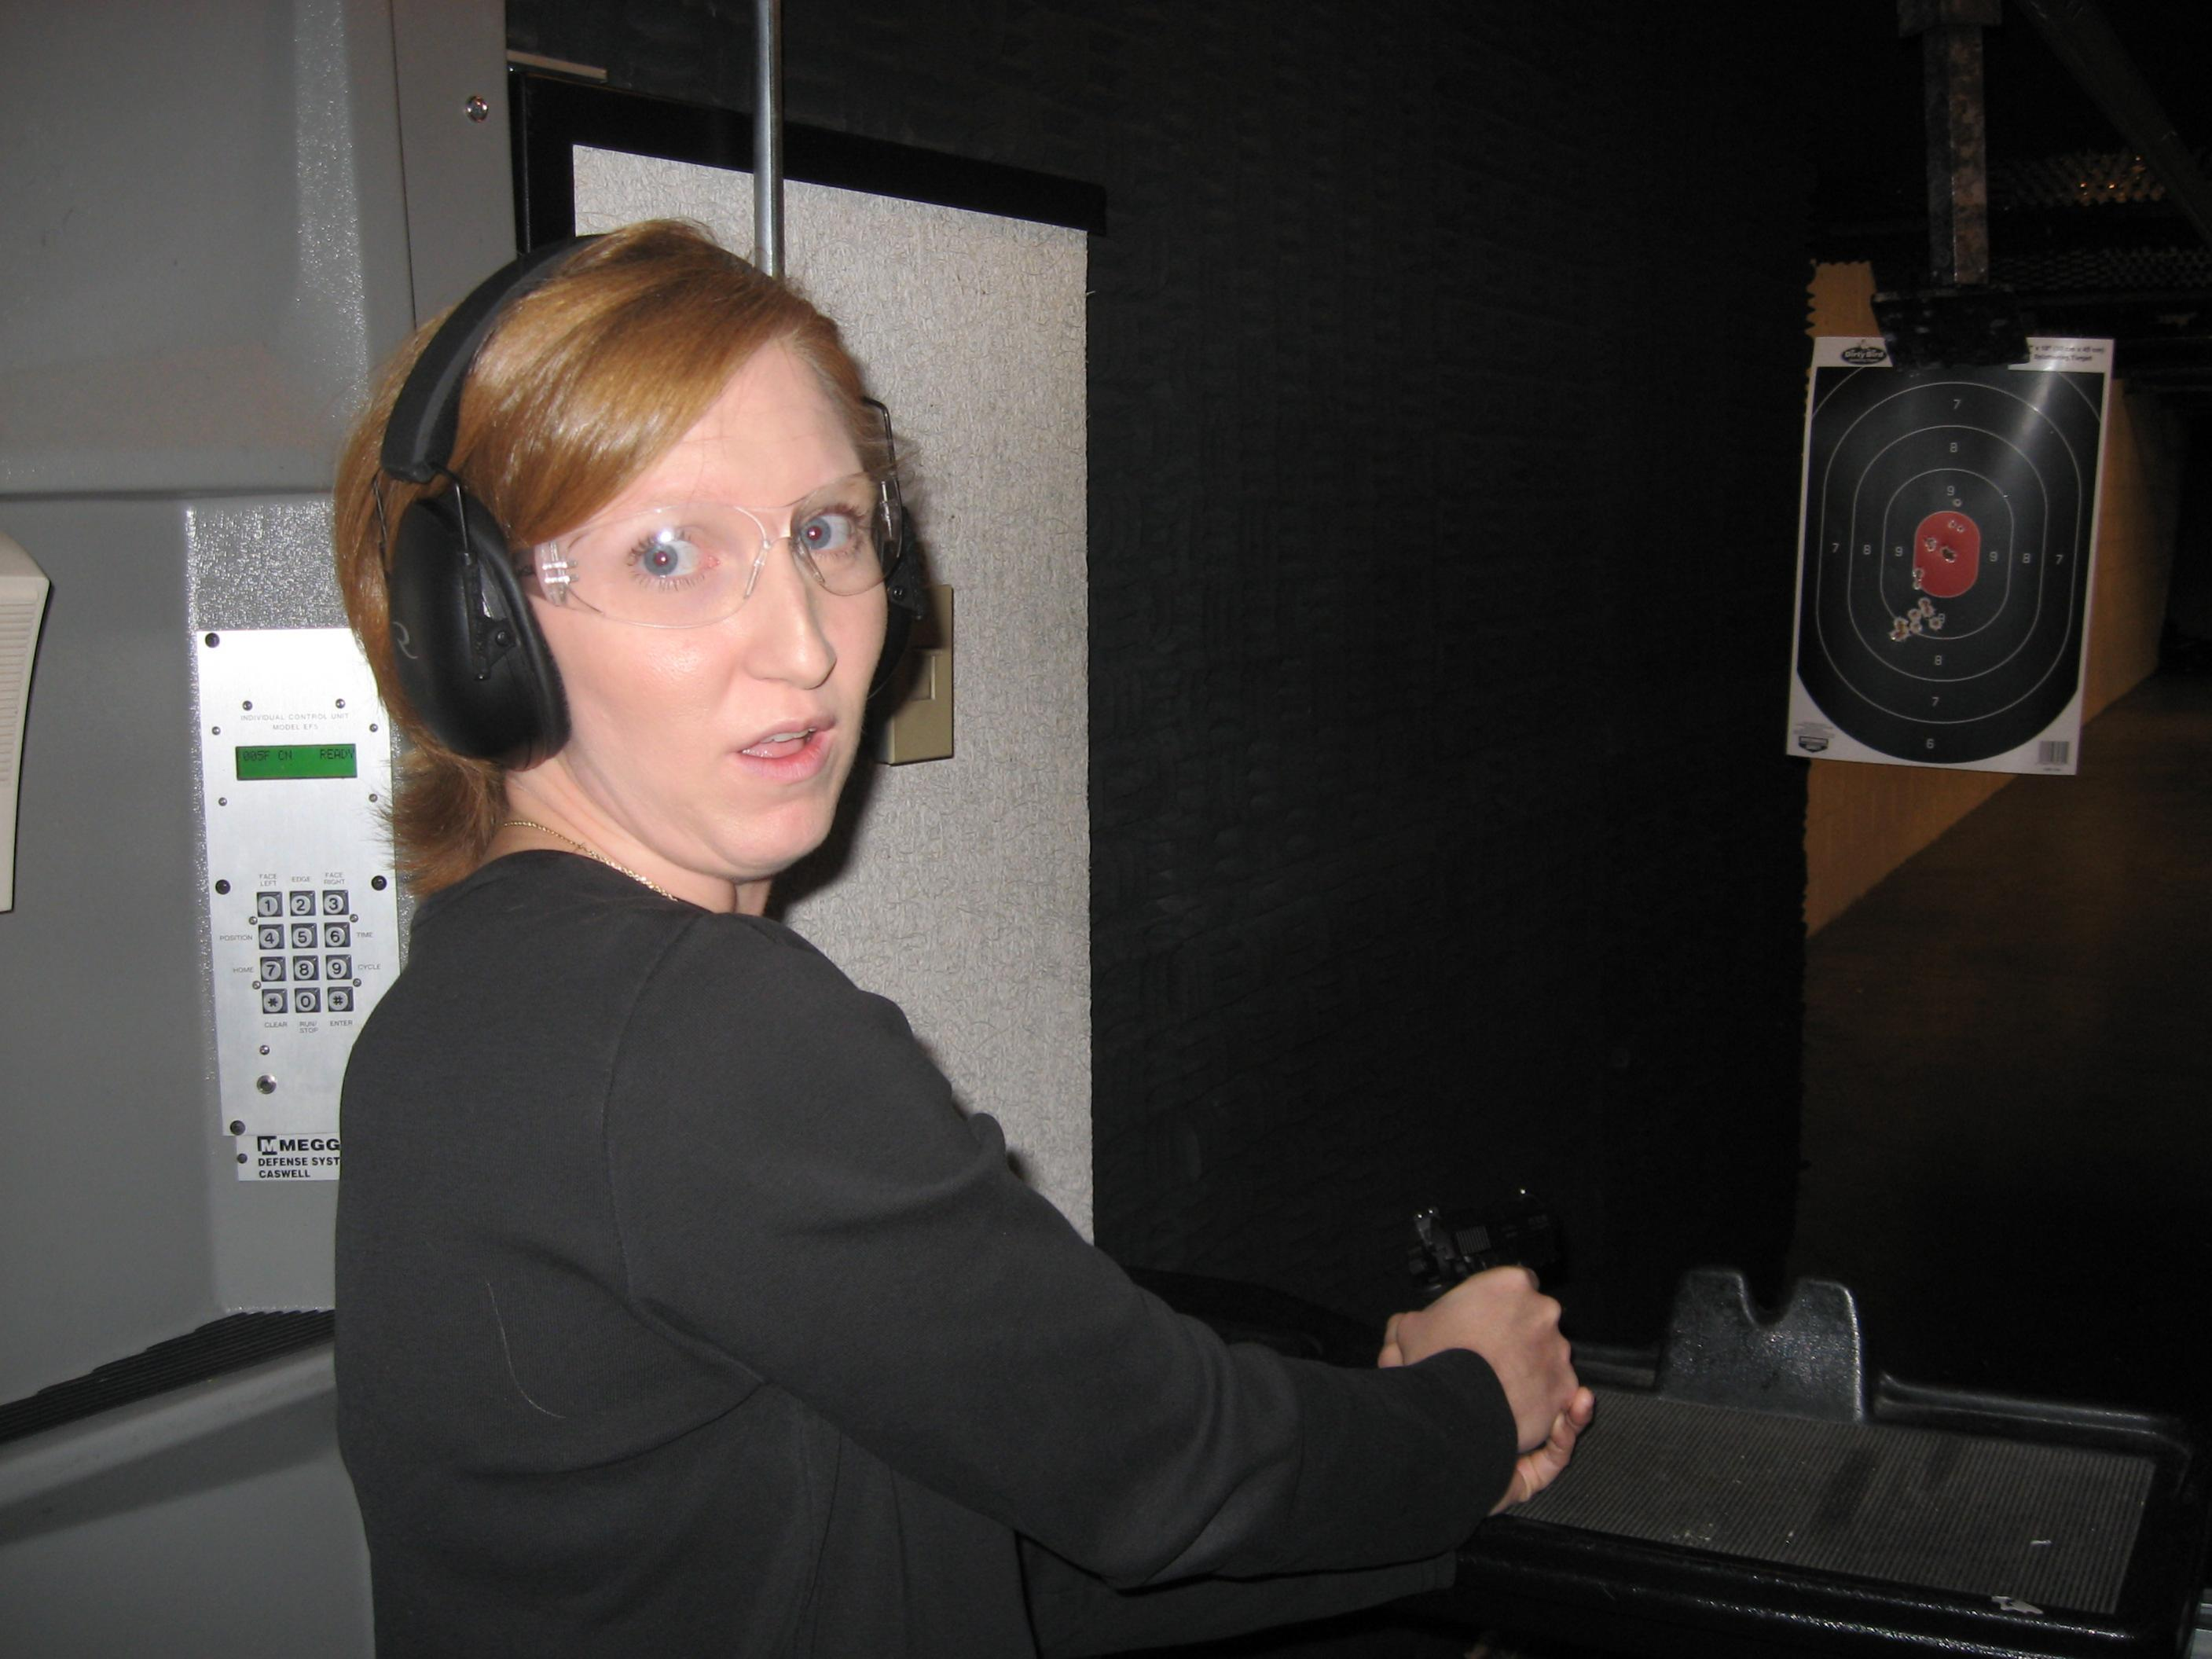 Range report: My Wife's 1st ever time to shoot-picture-007.jpg